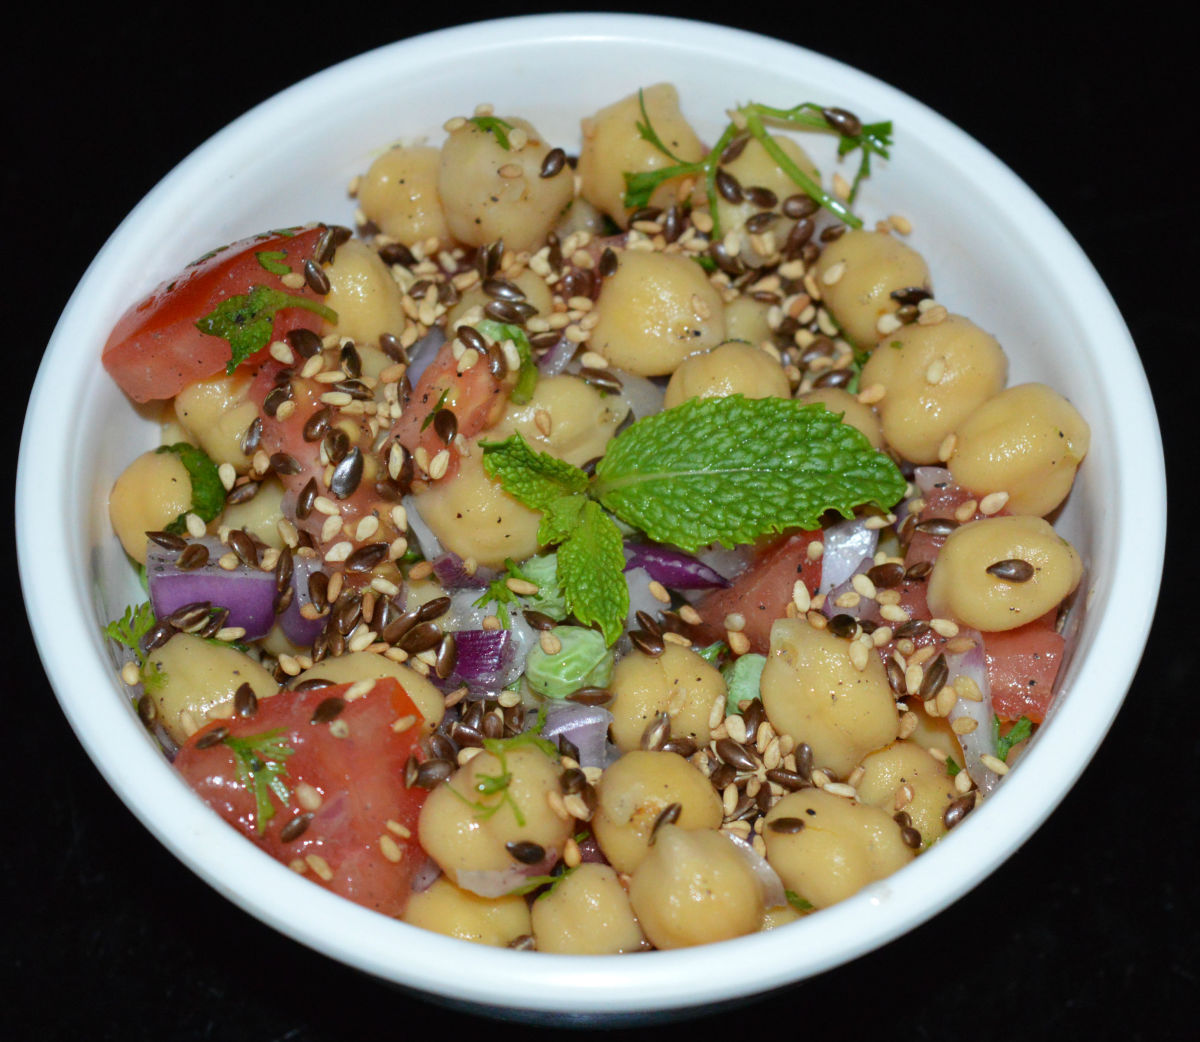 Step five: Serve 2-3 tablespoons of this awesome salad topped with some roasted sesame seeds and flax seeds. Enjoy eating!